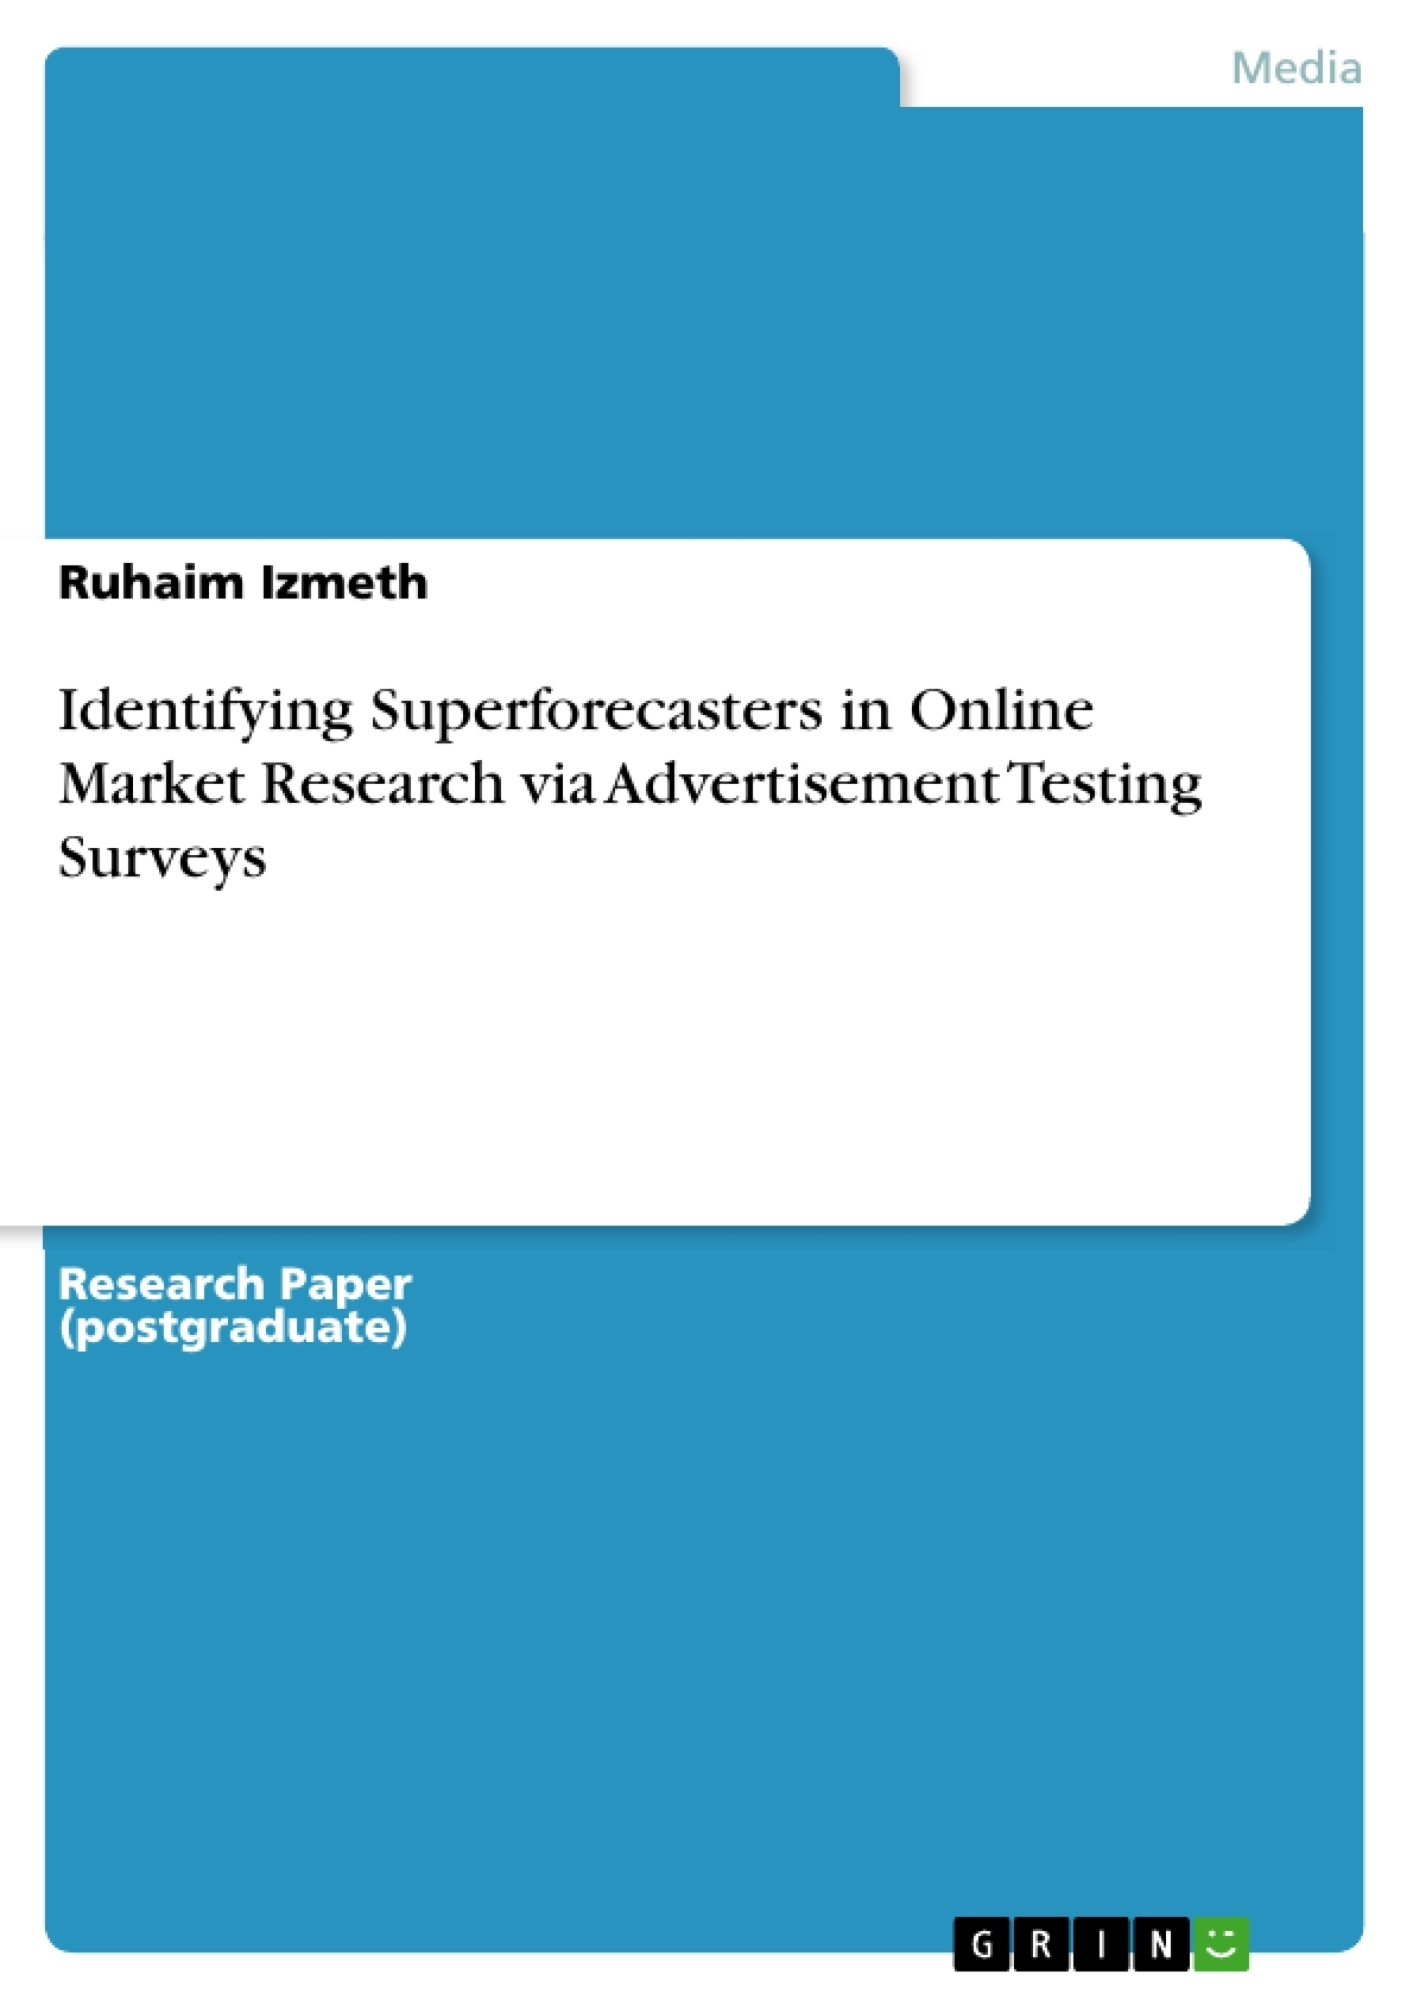 Title: Identifying Superforecasters in Online Market Research via Advertisement Testing Surveys